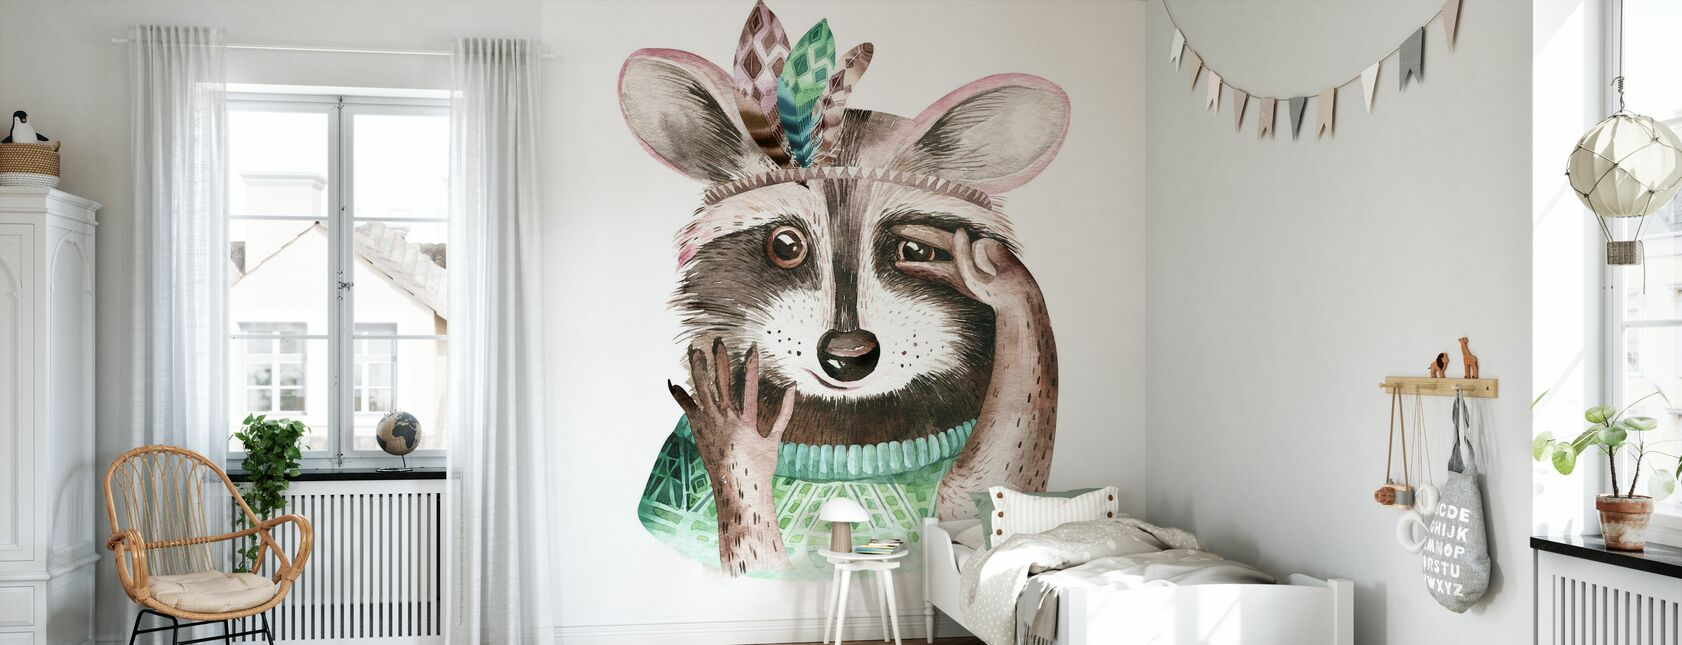 Raccoon with Feathers - Wallpaper - Kids Room